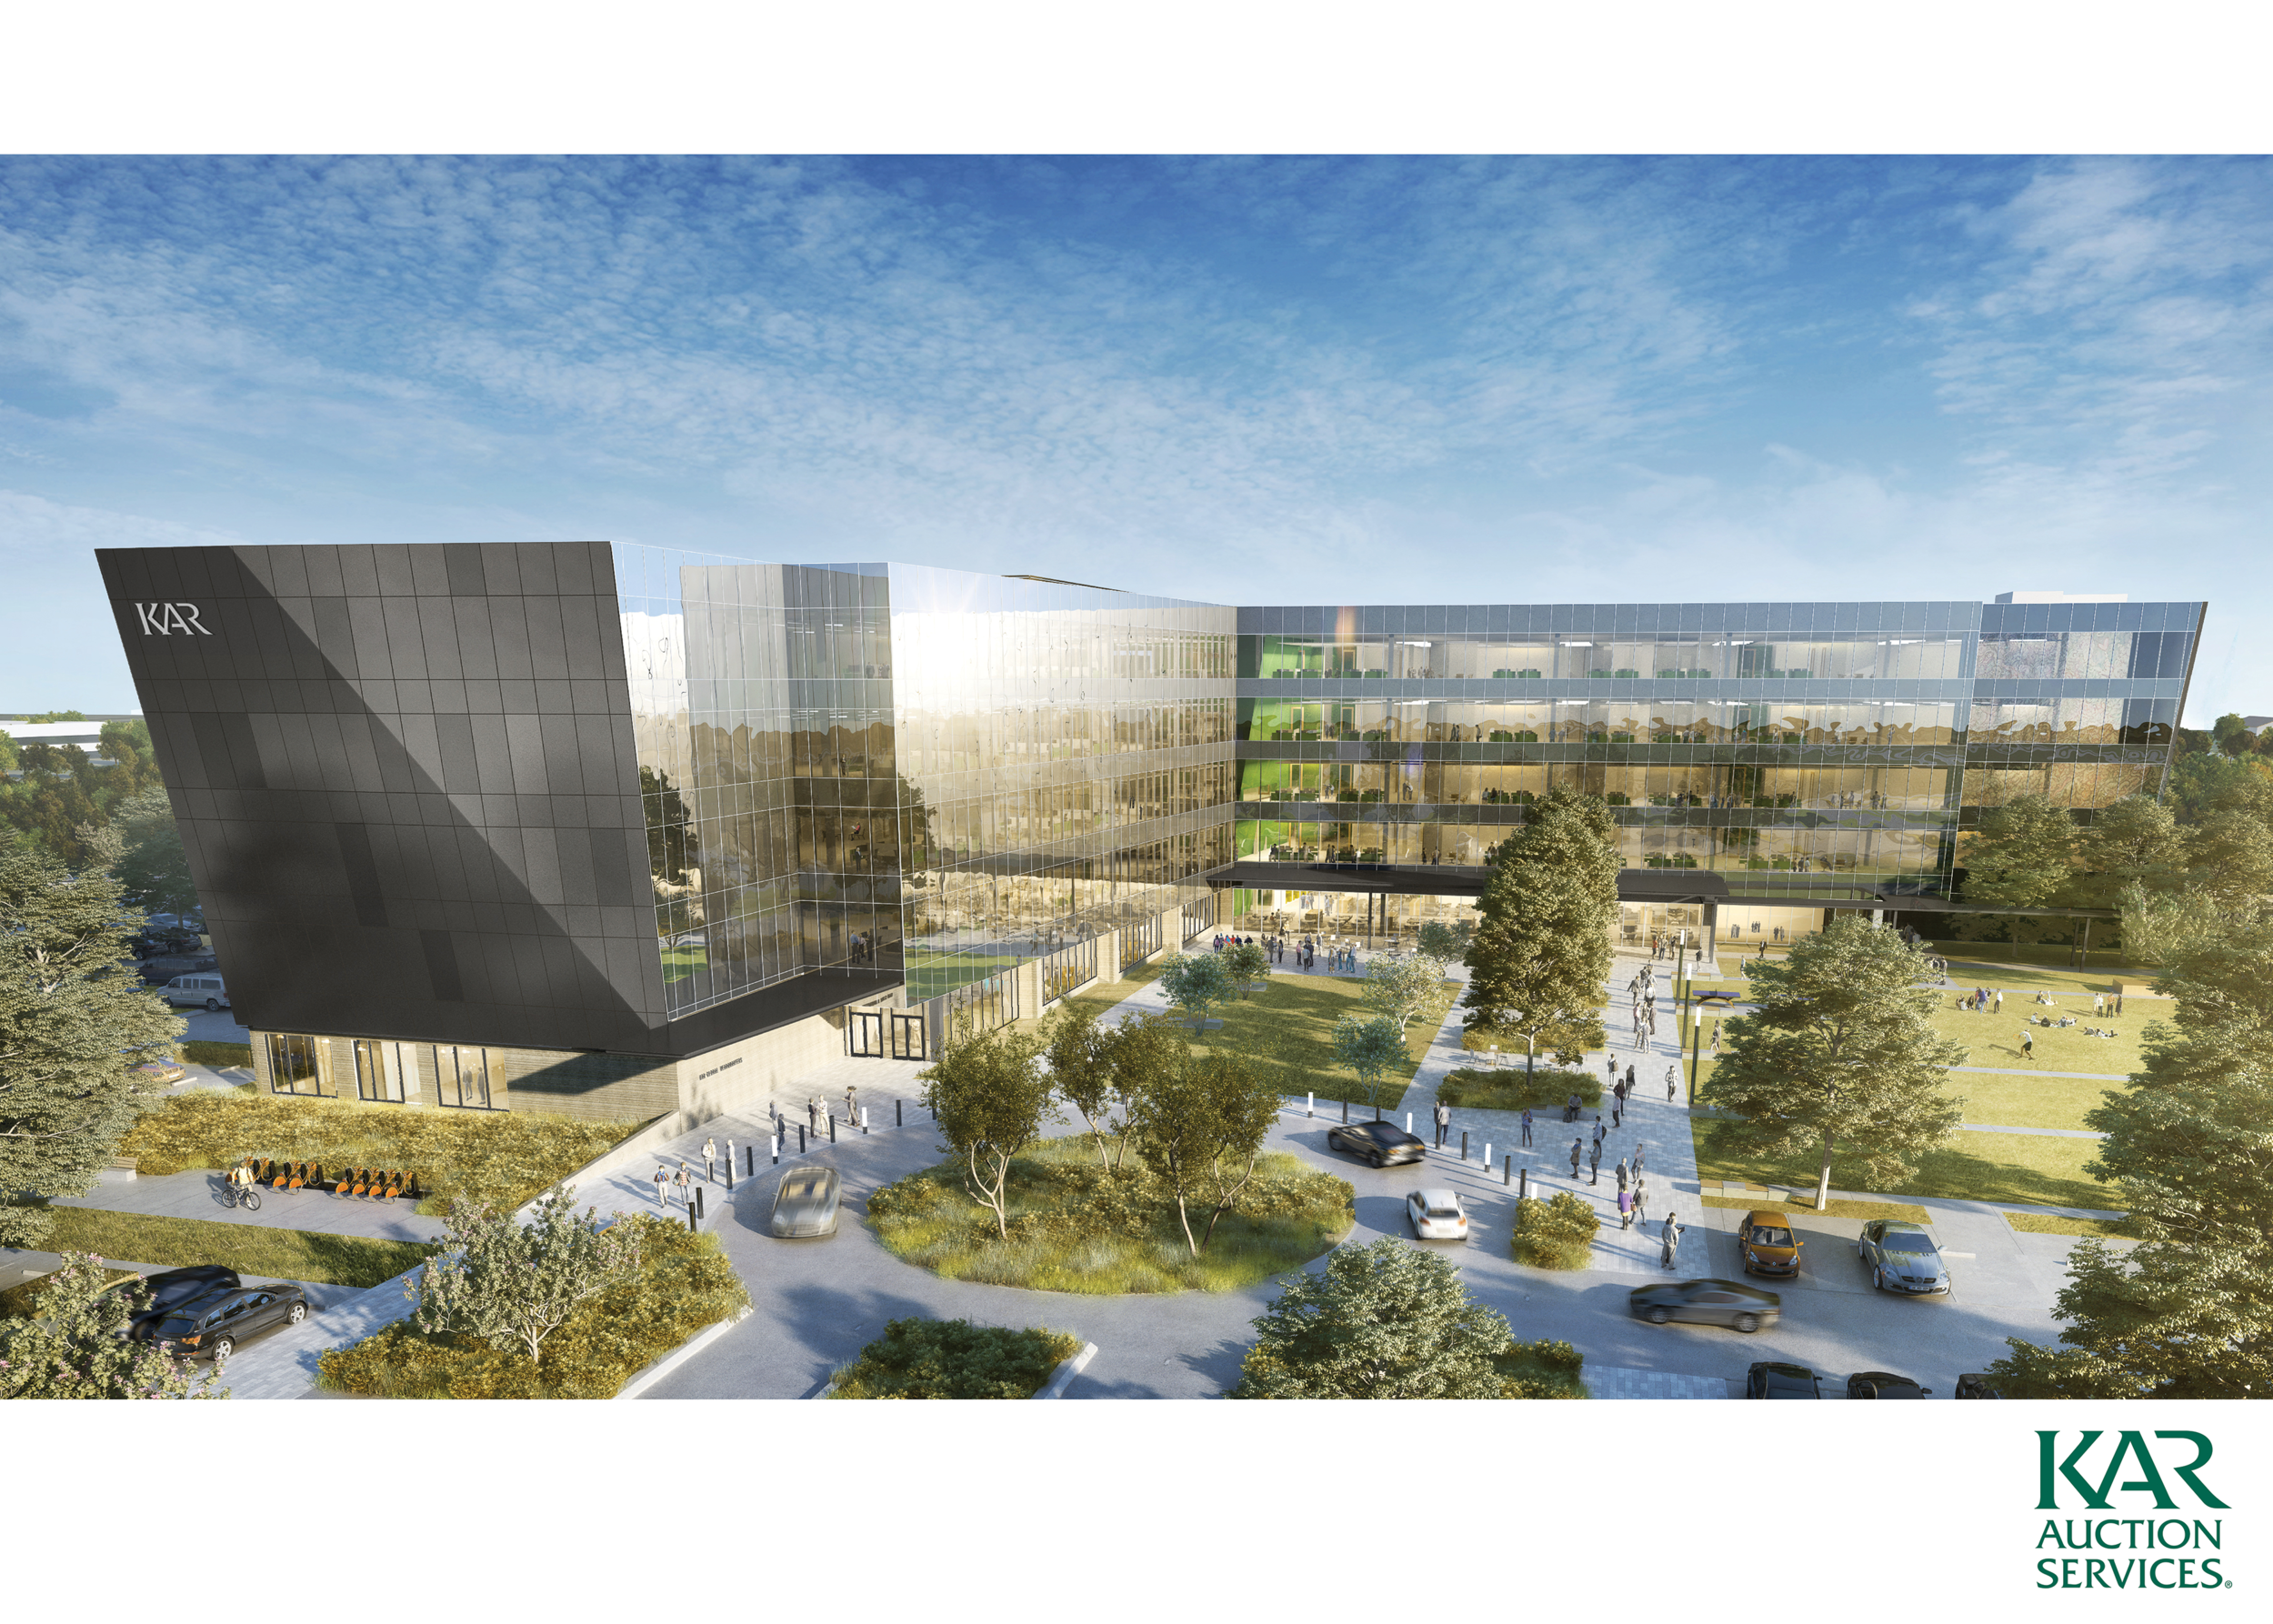 KAR Auction Services Campus   Indianapolis - 250,000 SF Office Planned for Completion in 2019 - See more Great Projects & Insights like these inside the Market Study!